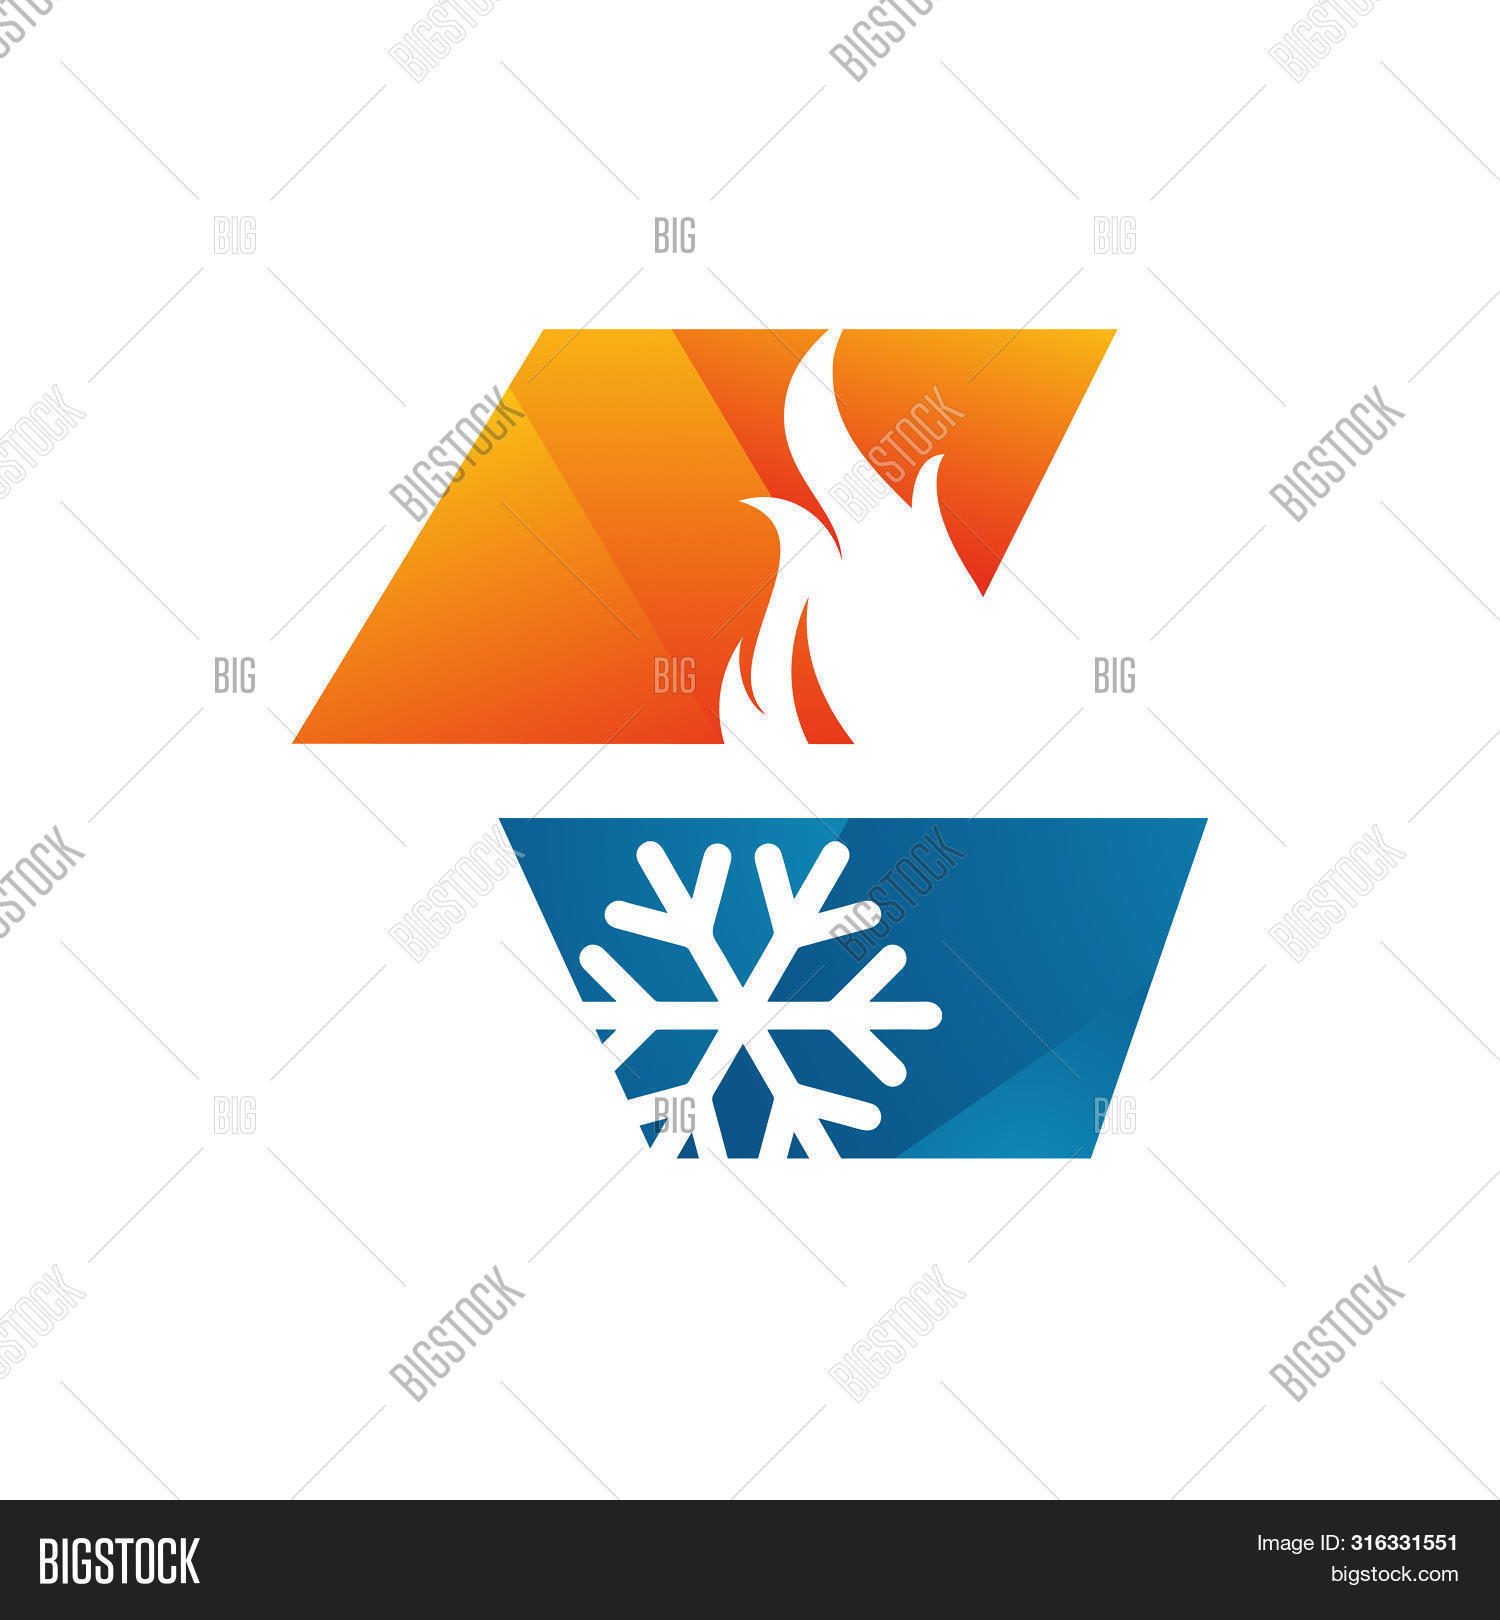 abstract,air,background,blue,business,cold,company,concept,conditioner,conditioning,cool,cooling,creative,design,element,flowing,graphic,heat,heating,hot,hvac,icon,identity,illustration,isolated,liquid,logo,modern,nature,red,repair,season,shape,sign,snowflake,storm,summer,symbol,template,travel,vector,ventilation,vintage,warm,water,wave,weather,white,wind